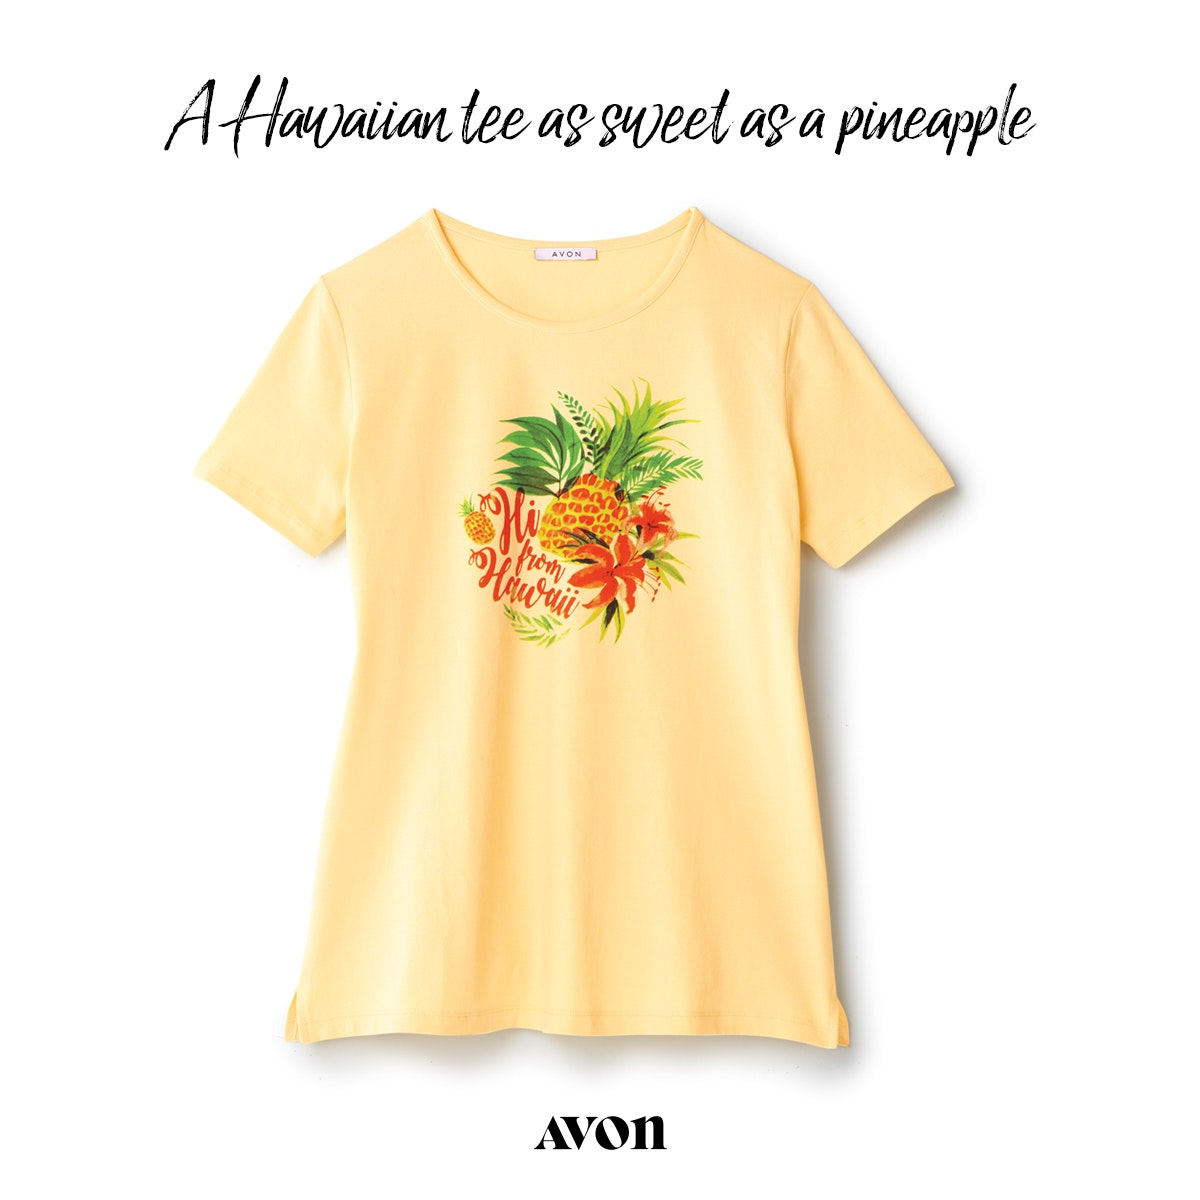 Hi from Hawaii Tee from Avon